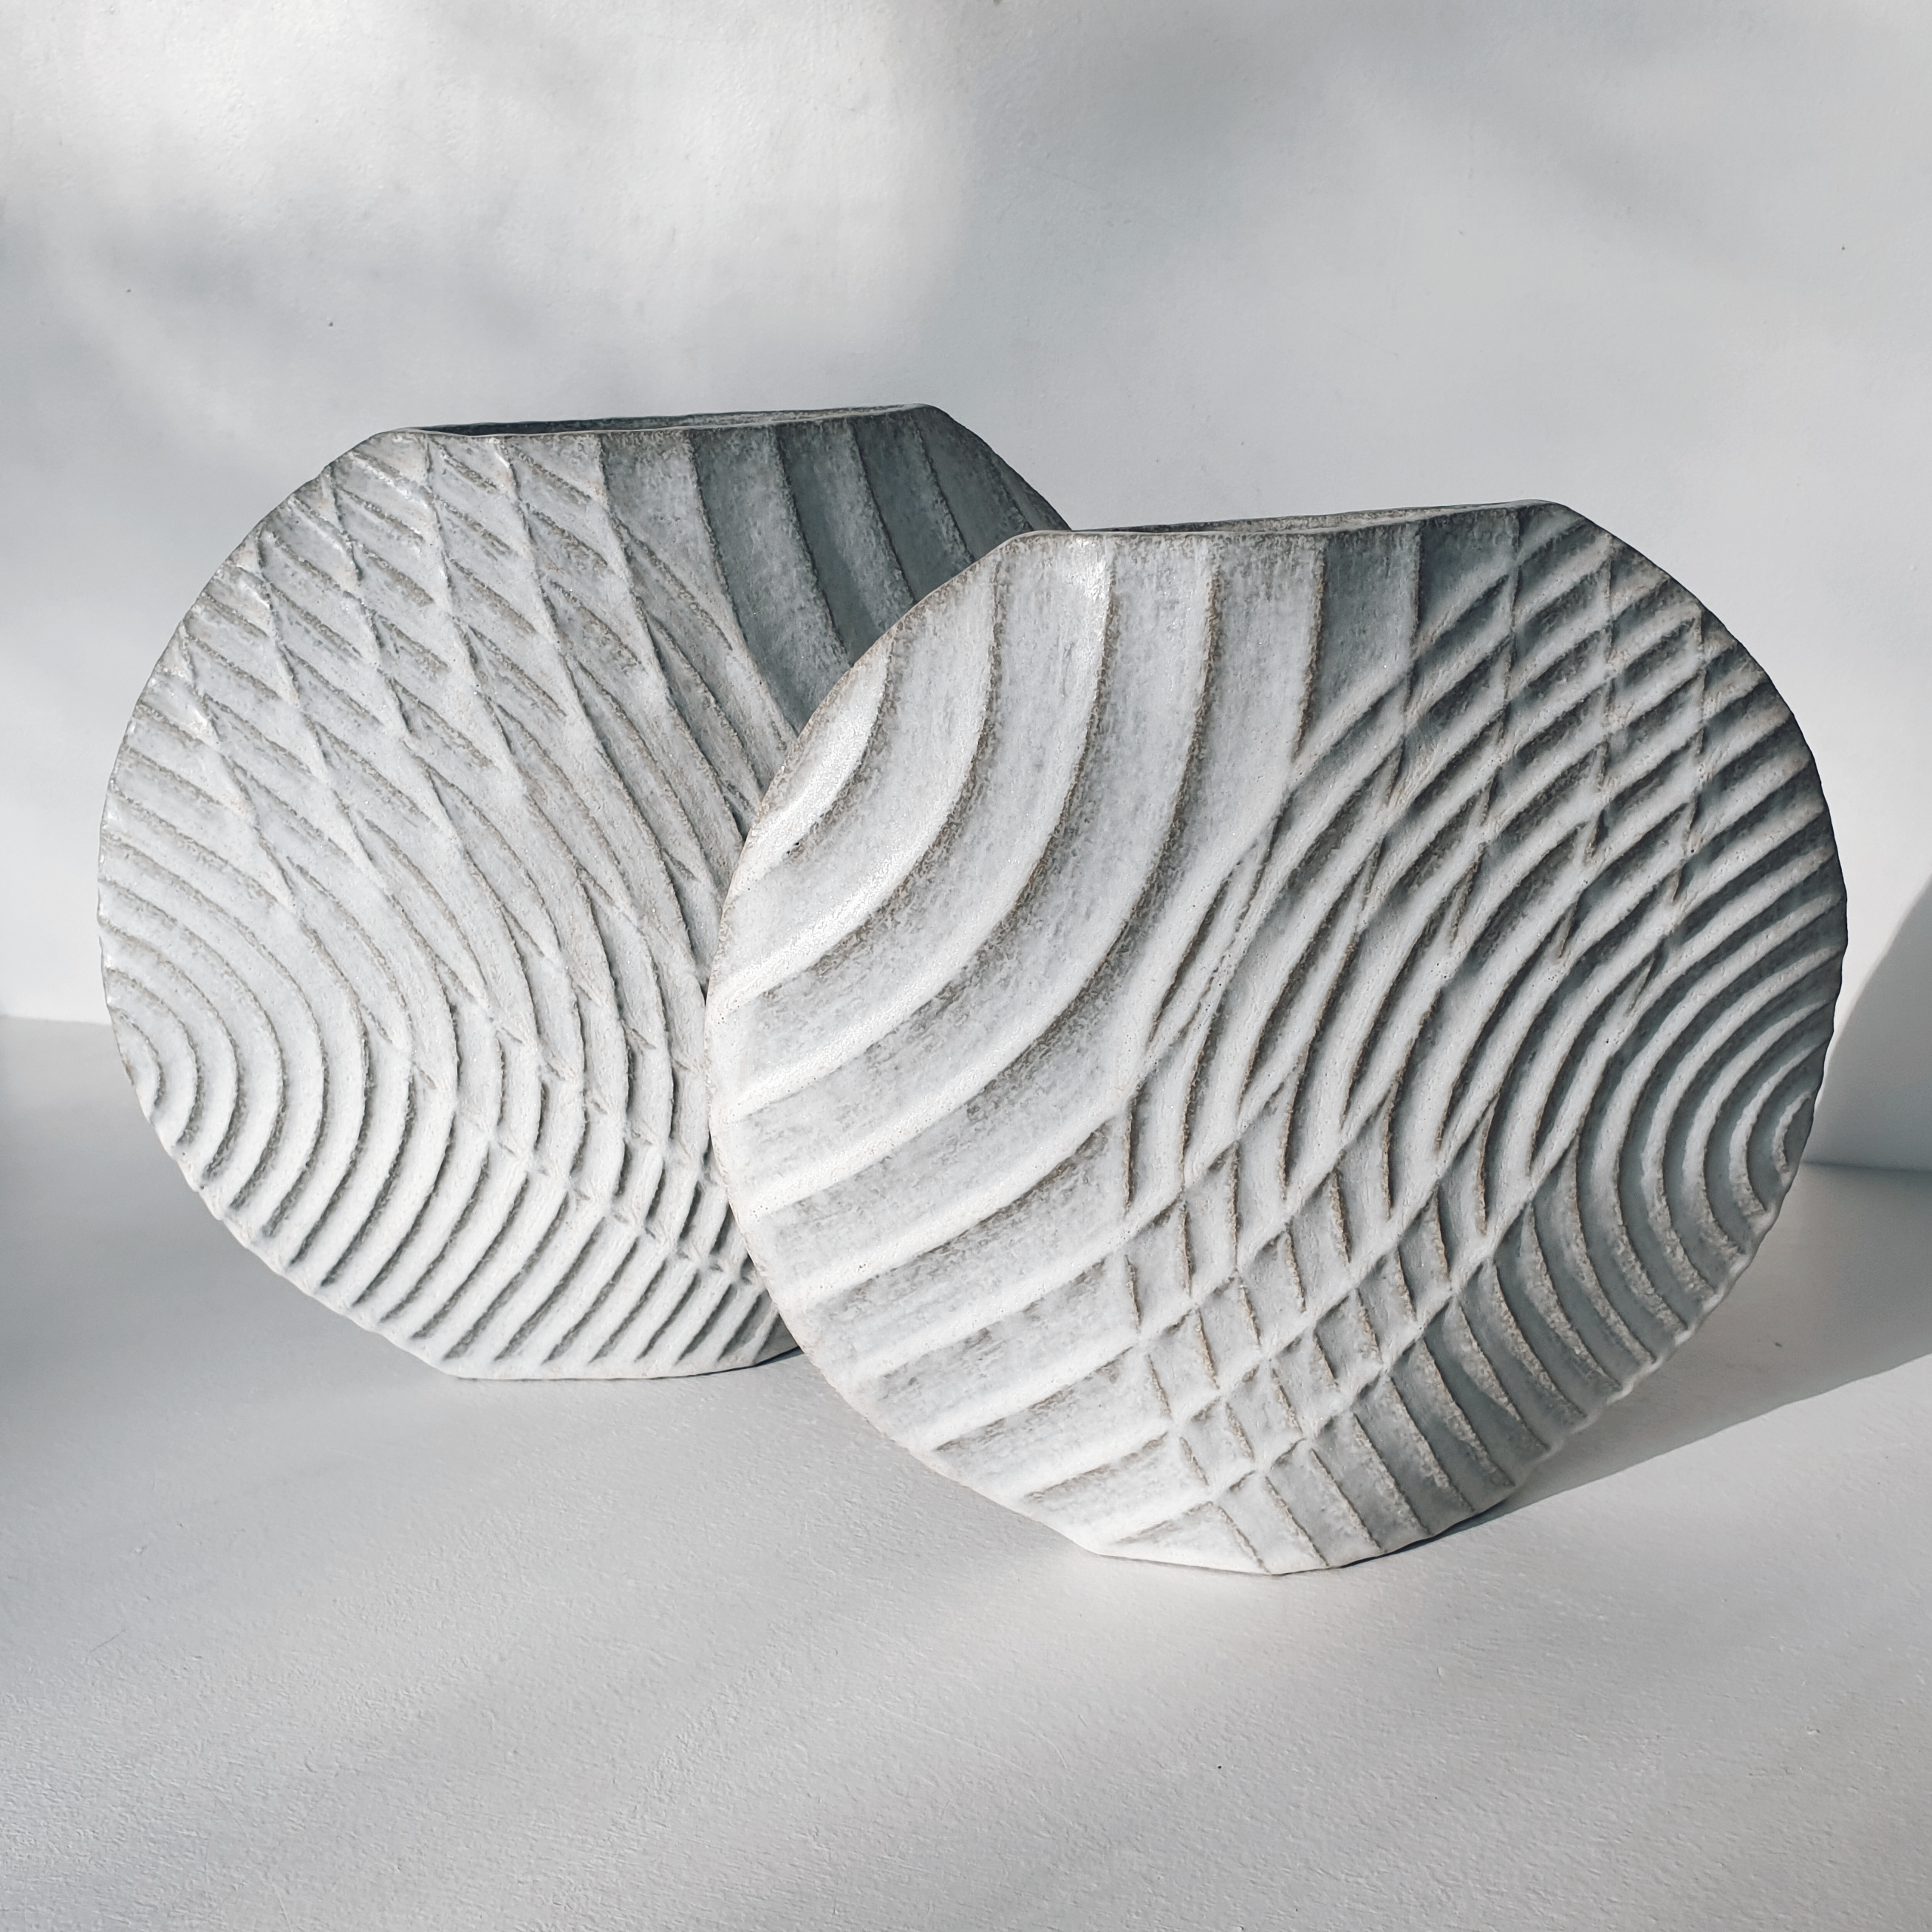 Michele Bianco. Carved 'Disc' Overlap vessels